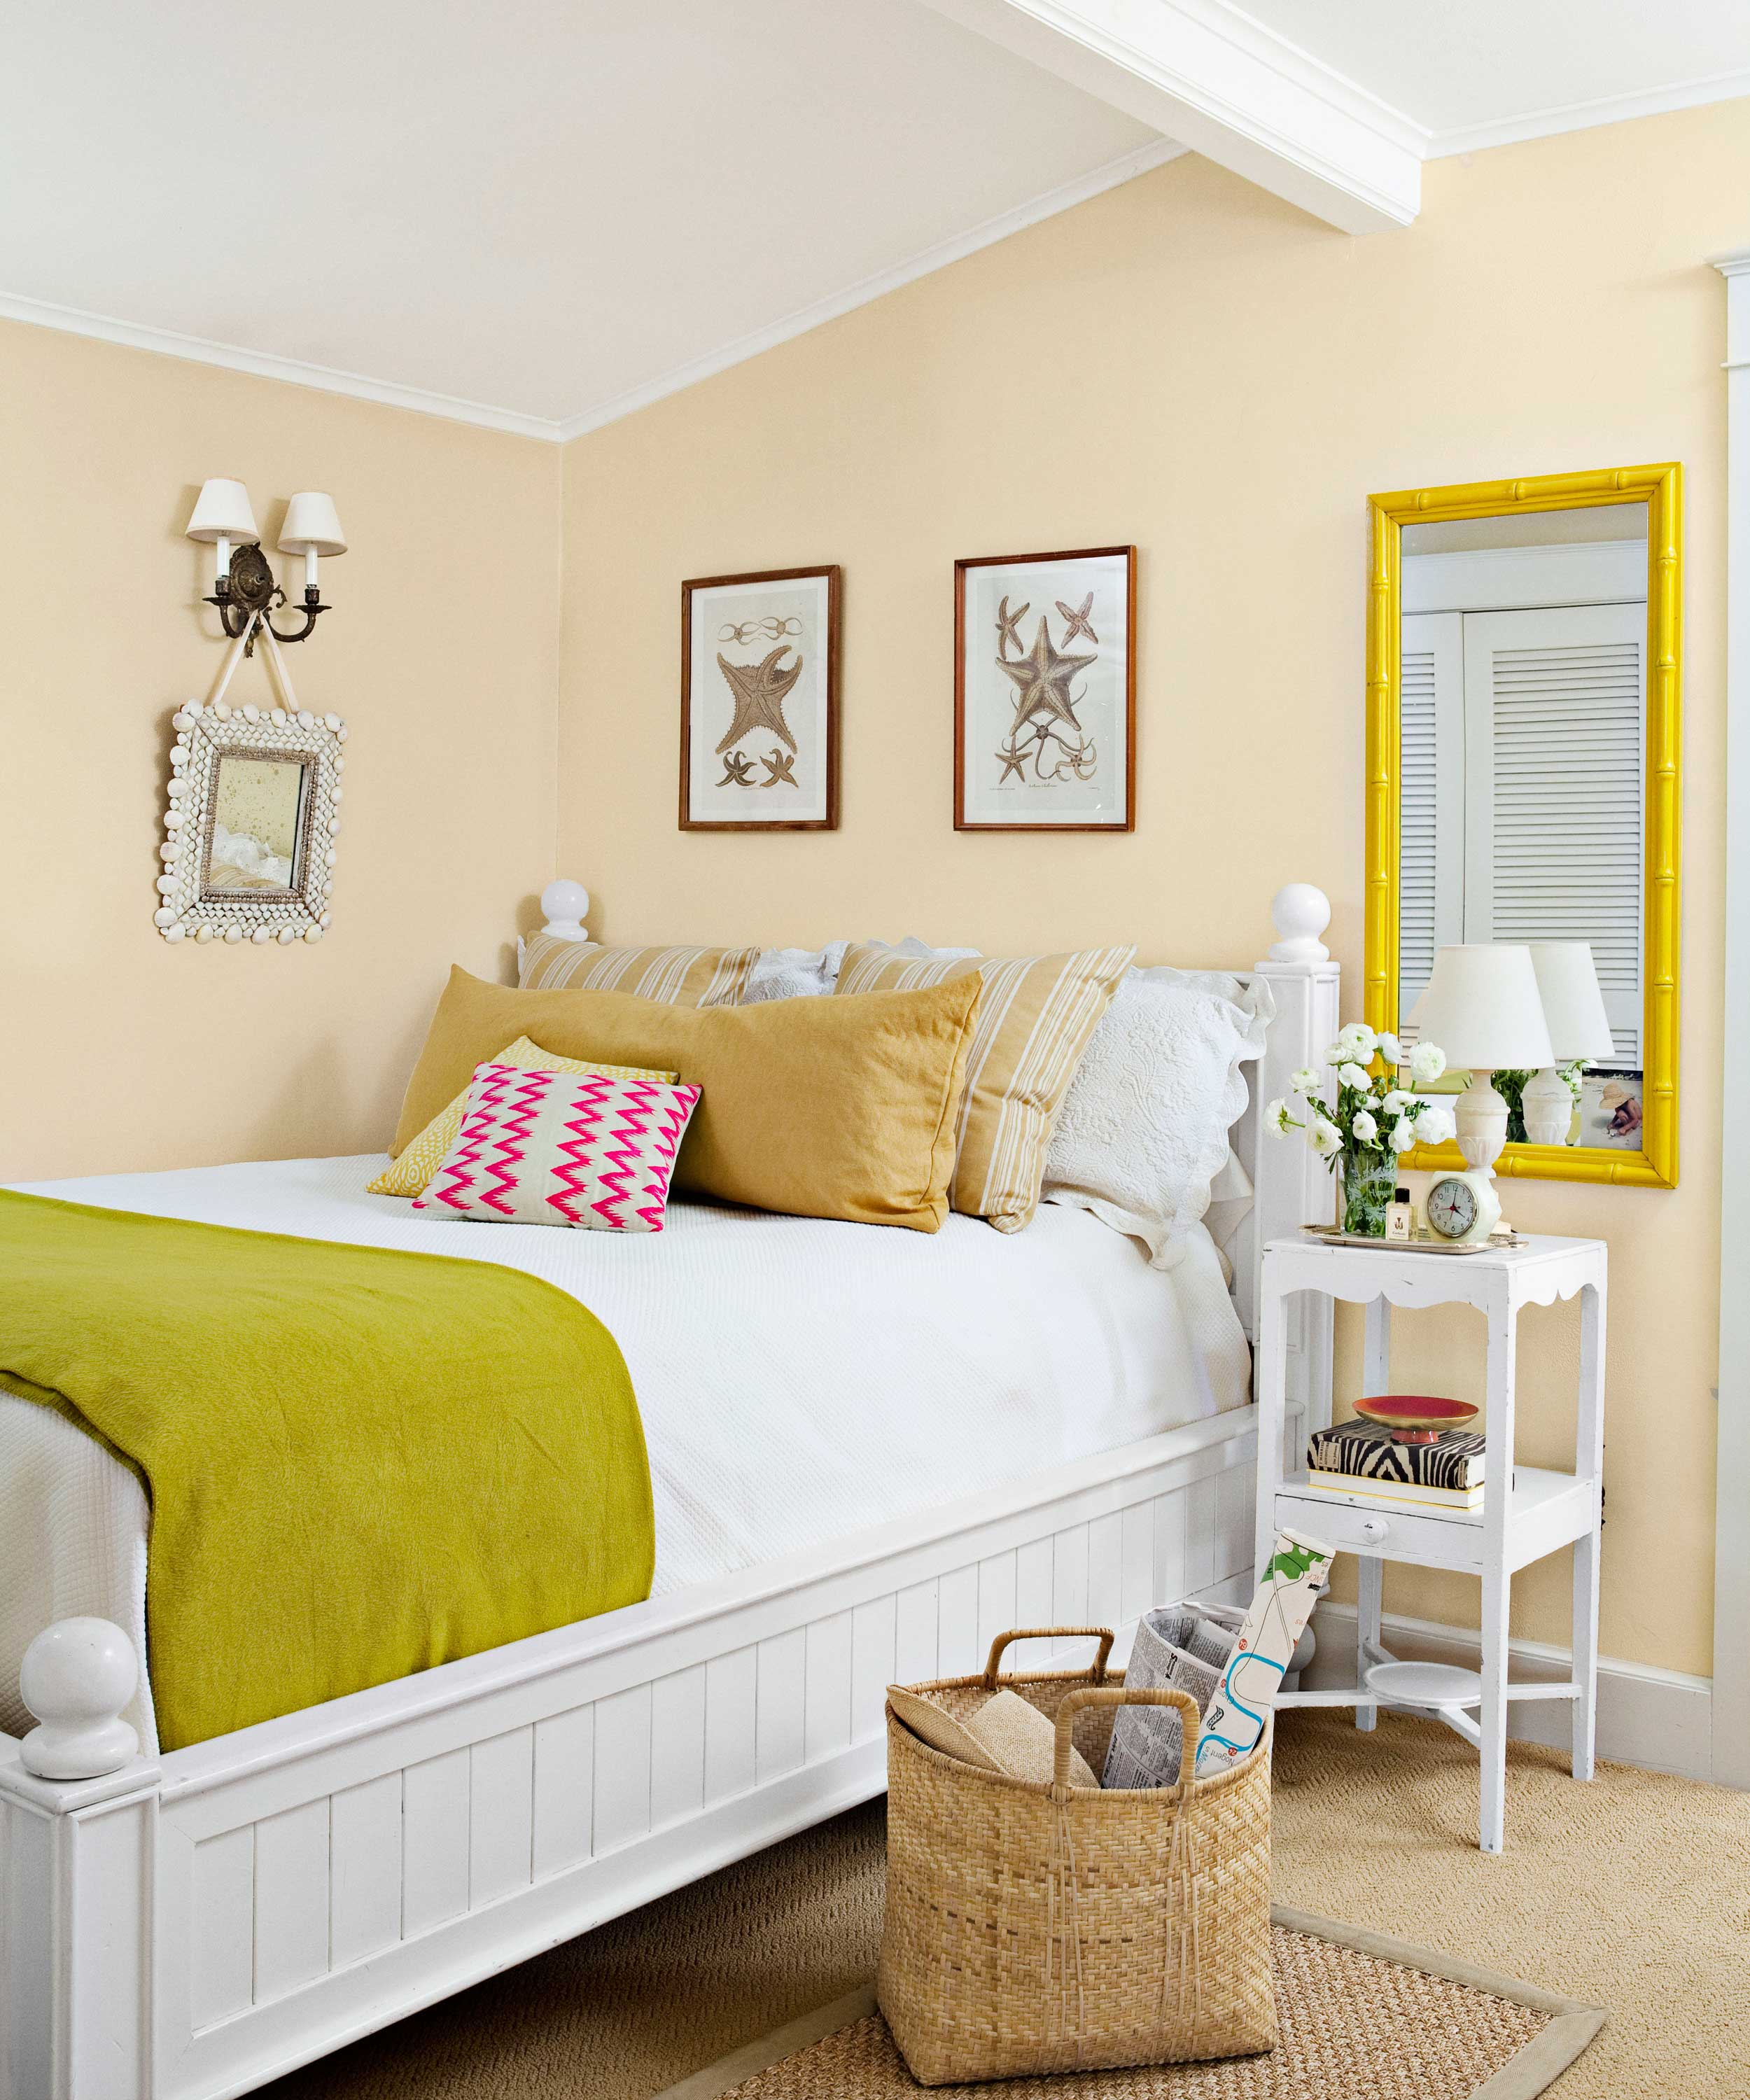 . 15 Paint Colors for Small Rooms   Painting Small Rooms